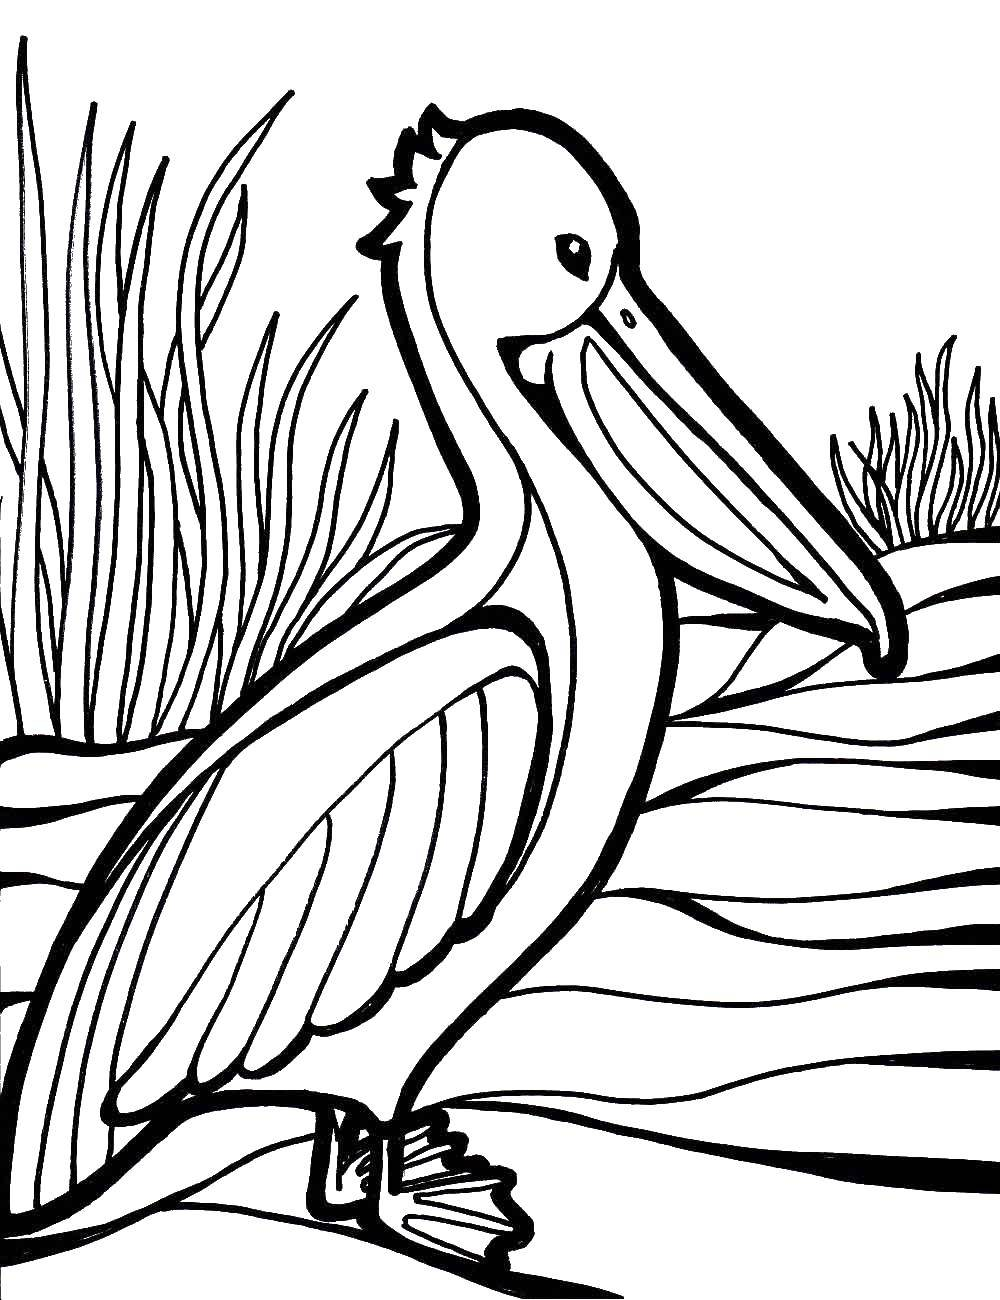 Coloring sheet Animals Download Jesus , religion, Moses.  Print ,Adam and eve,